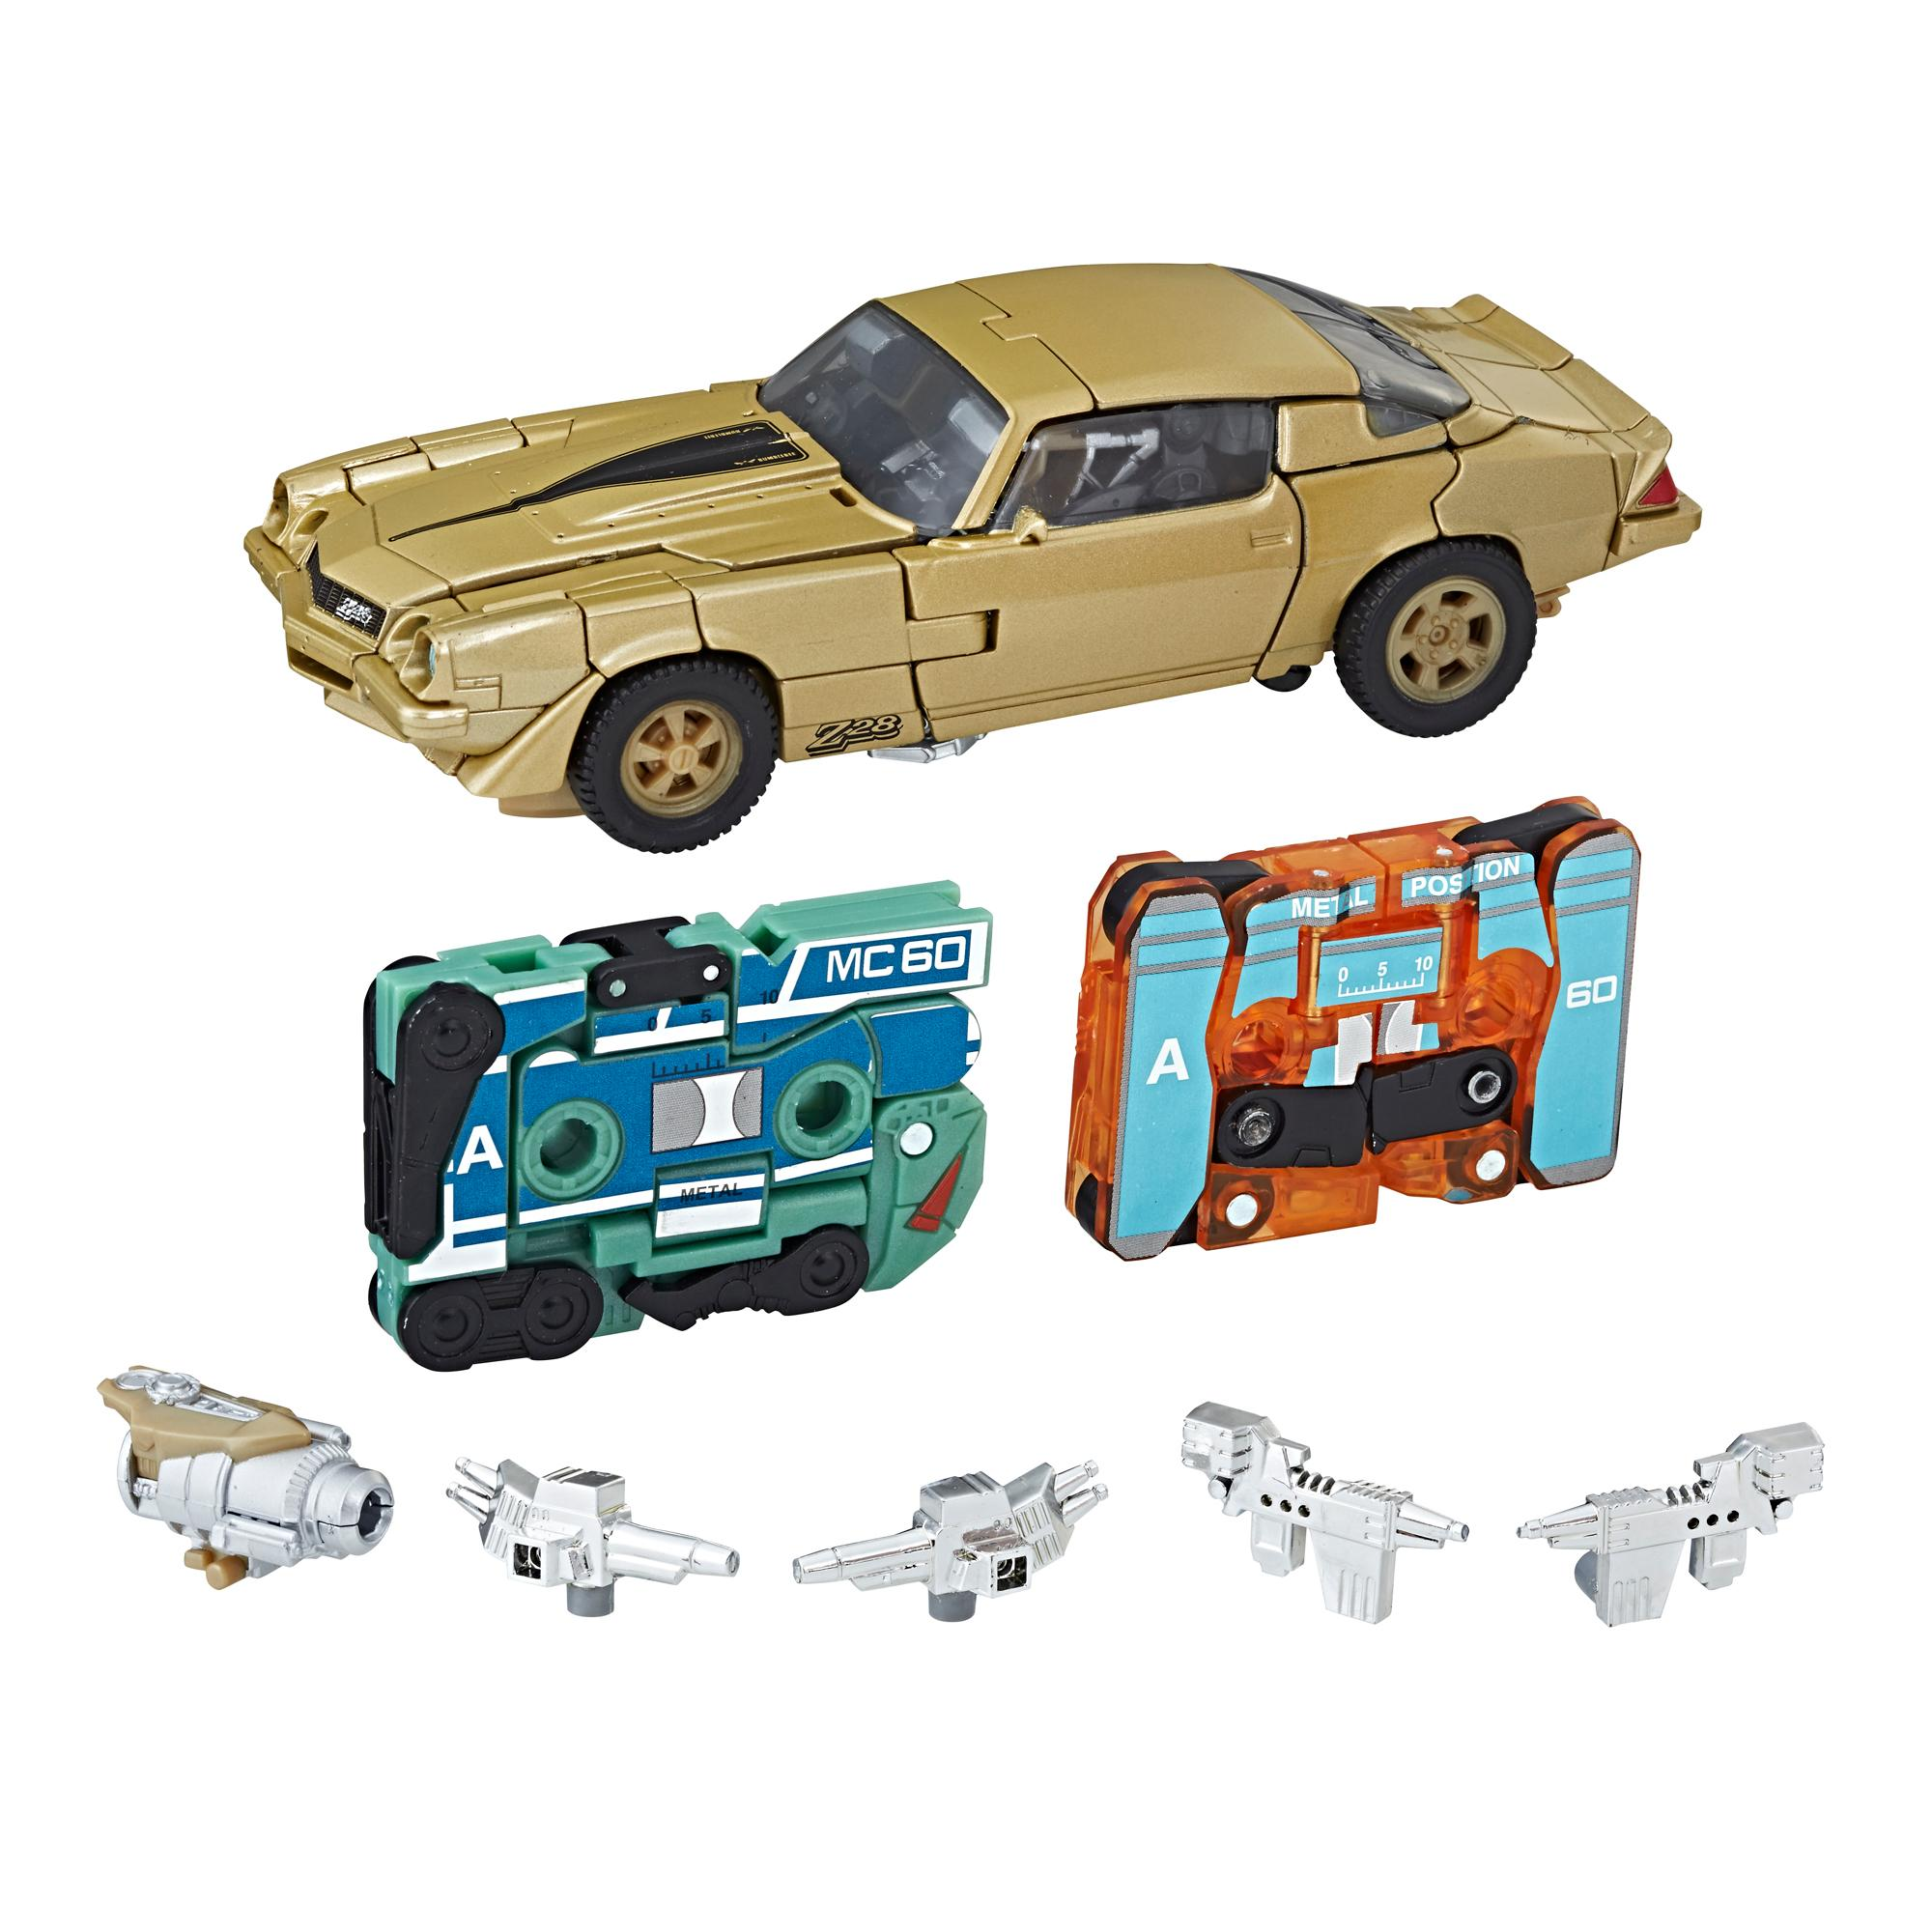 Transformers: Studio Series 19 Bumblebee Vol. 1 Retro Rock Garage (SDCC Exclusive)